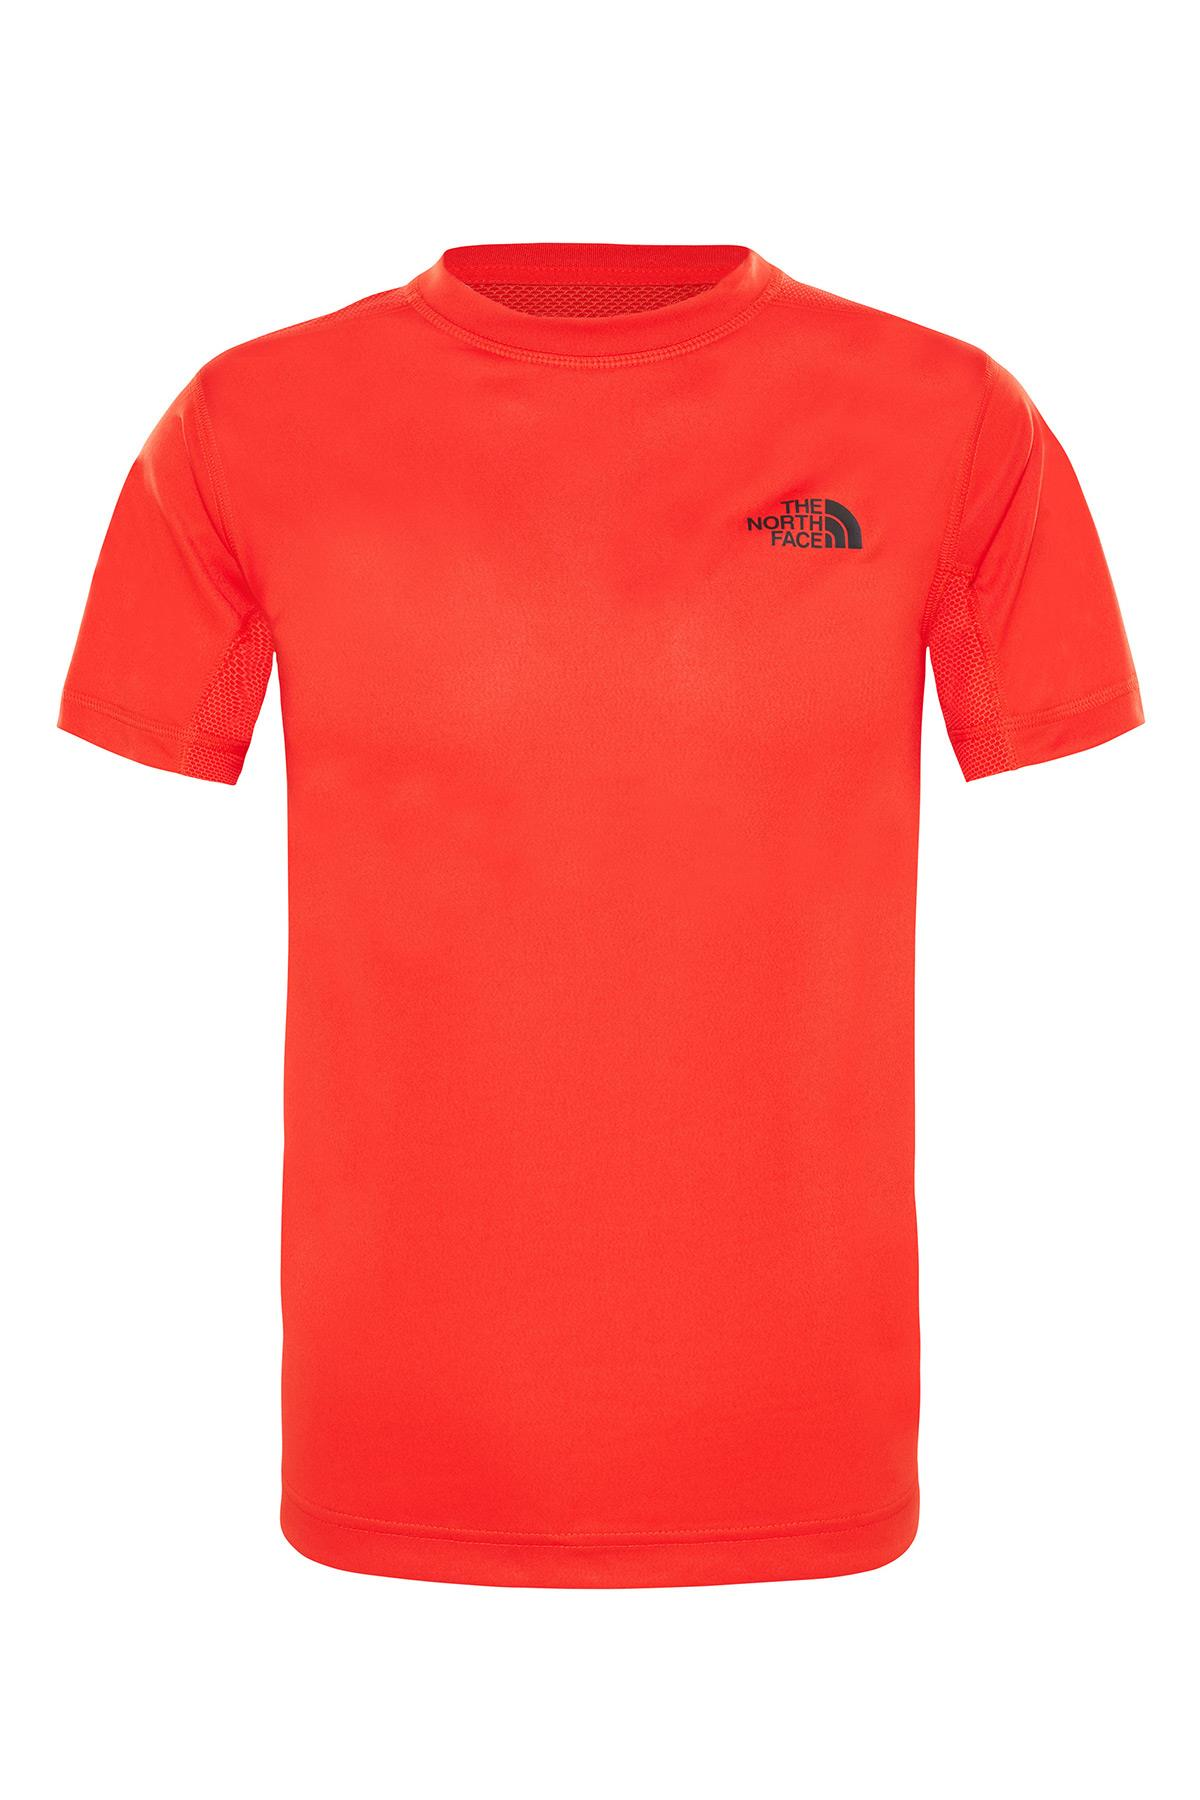 The Northface B Reactor S/S Tee T93S3415Q Tişört